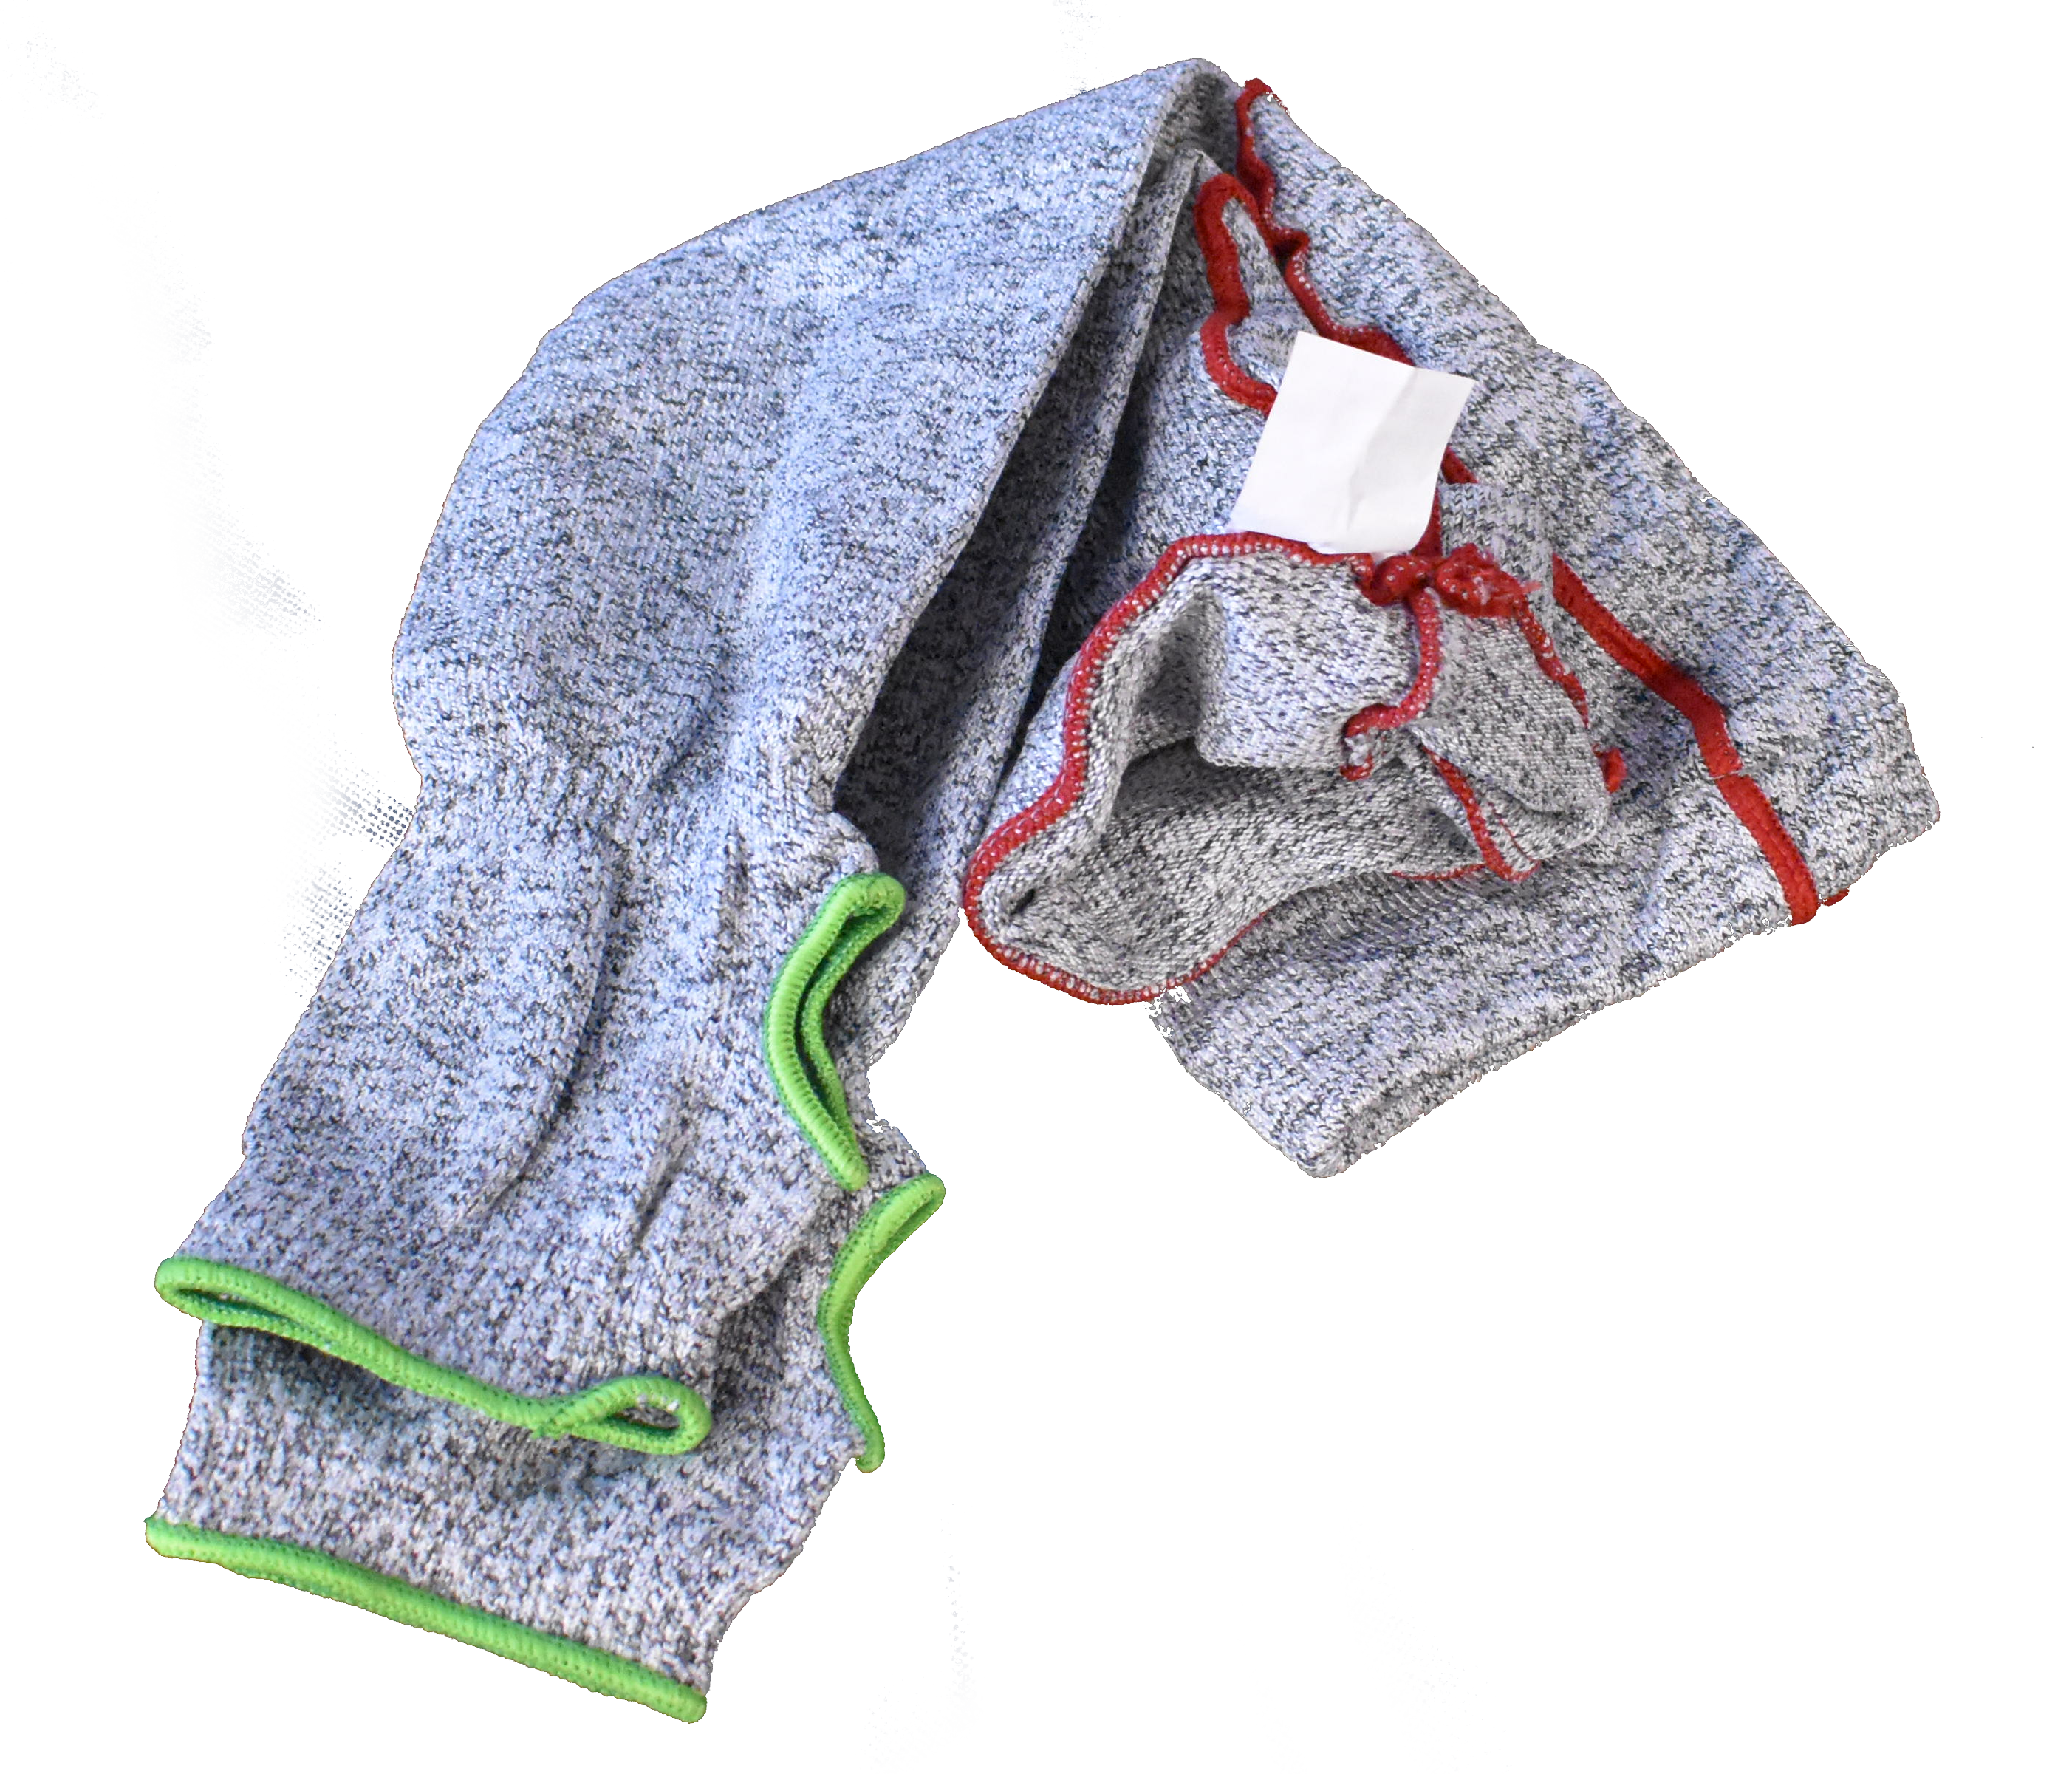 grey safety sleeves